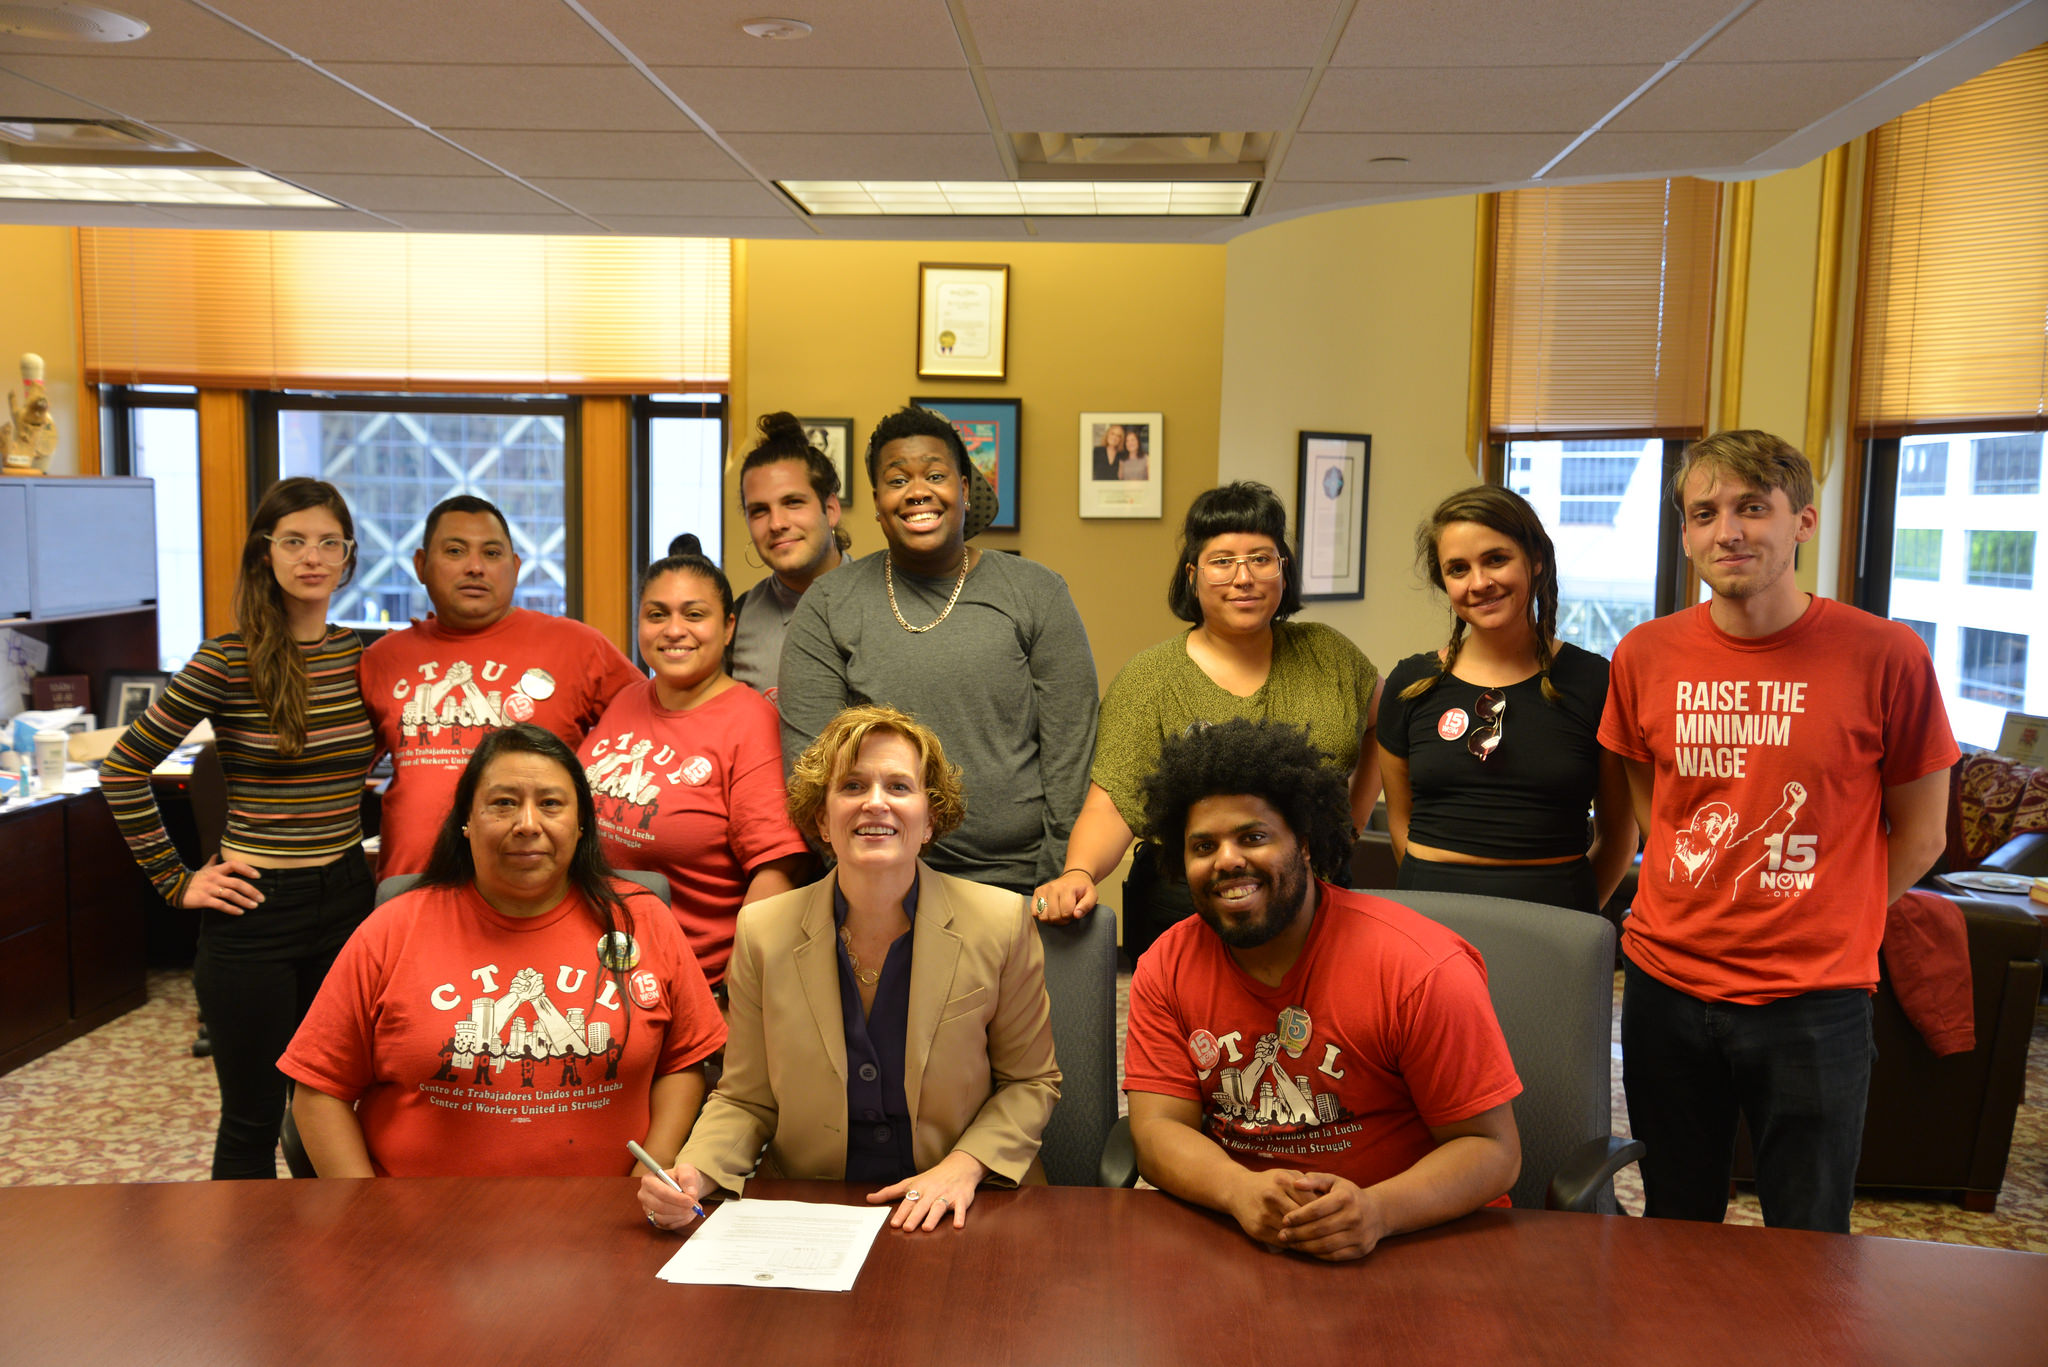 Press Release: Mayor Hodges Discusses Minimum Wage and Tip Penalty